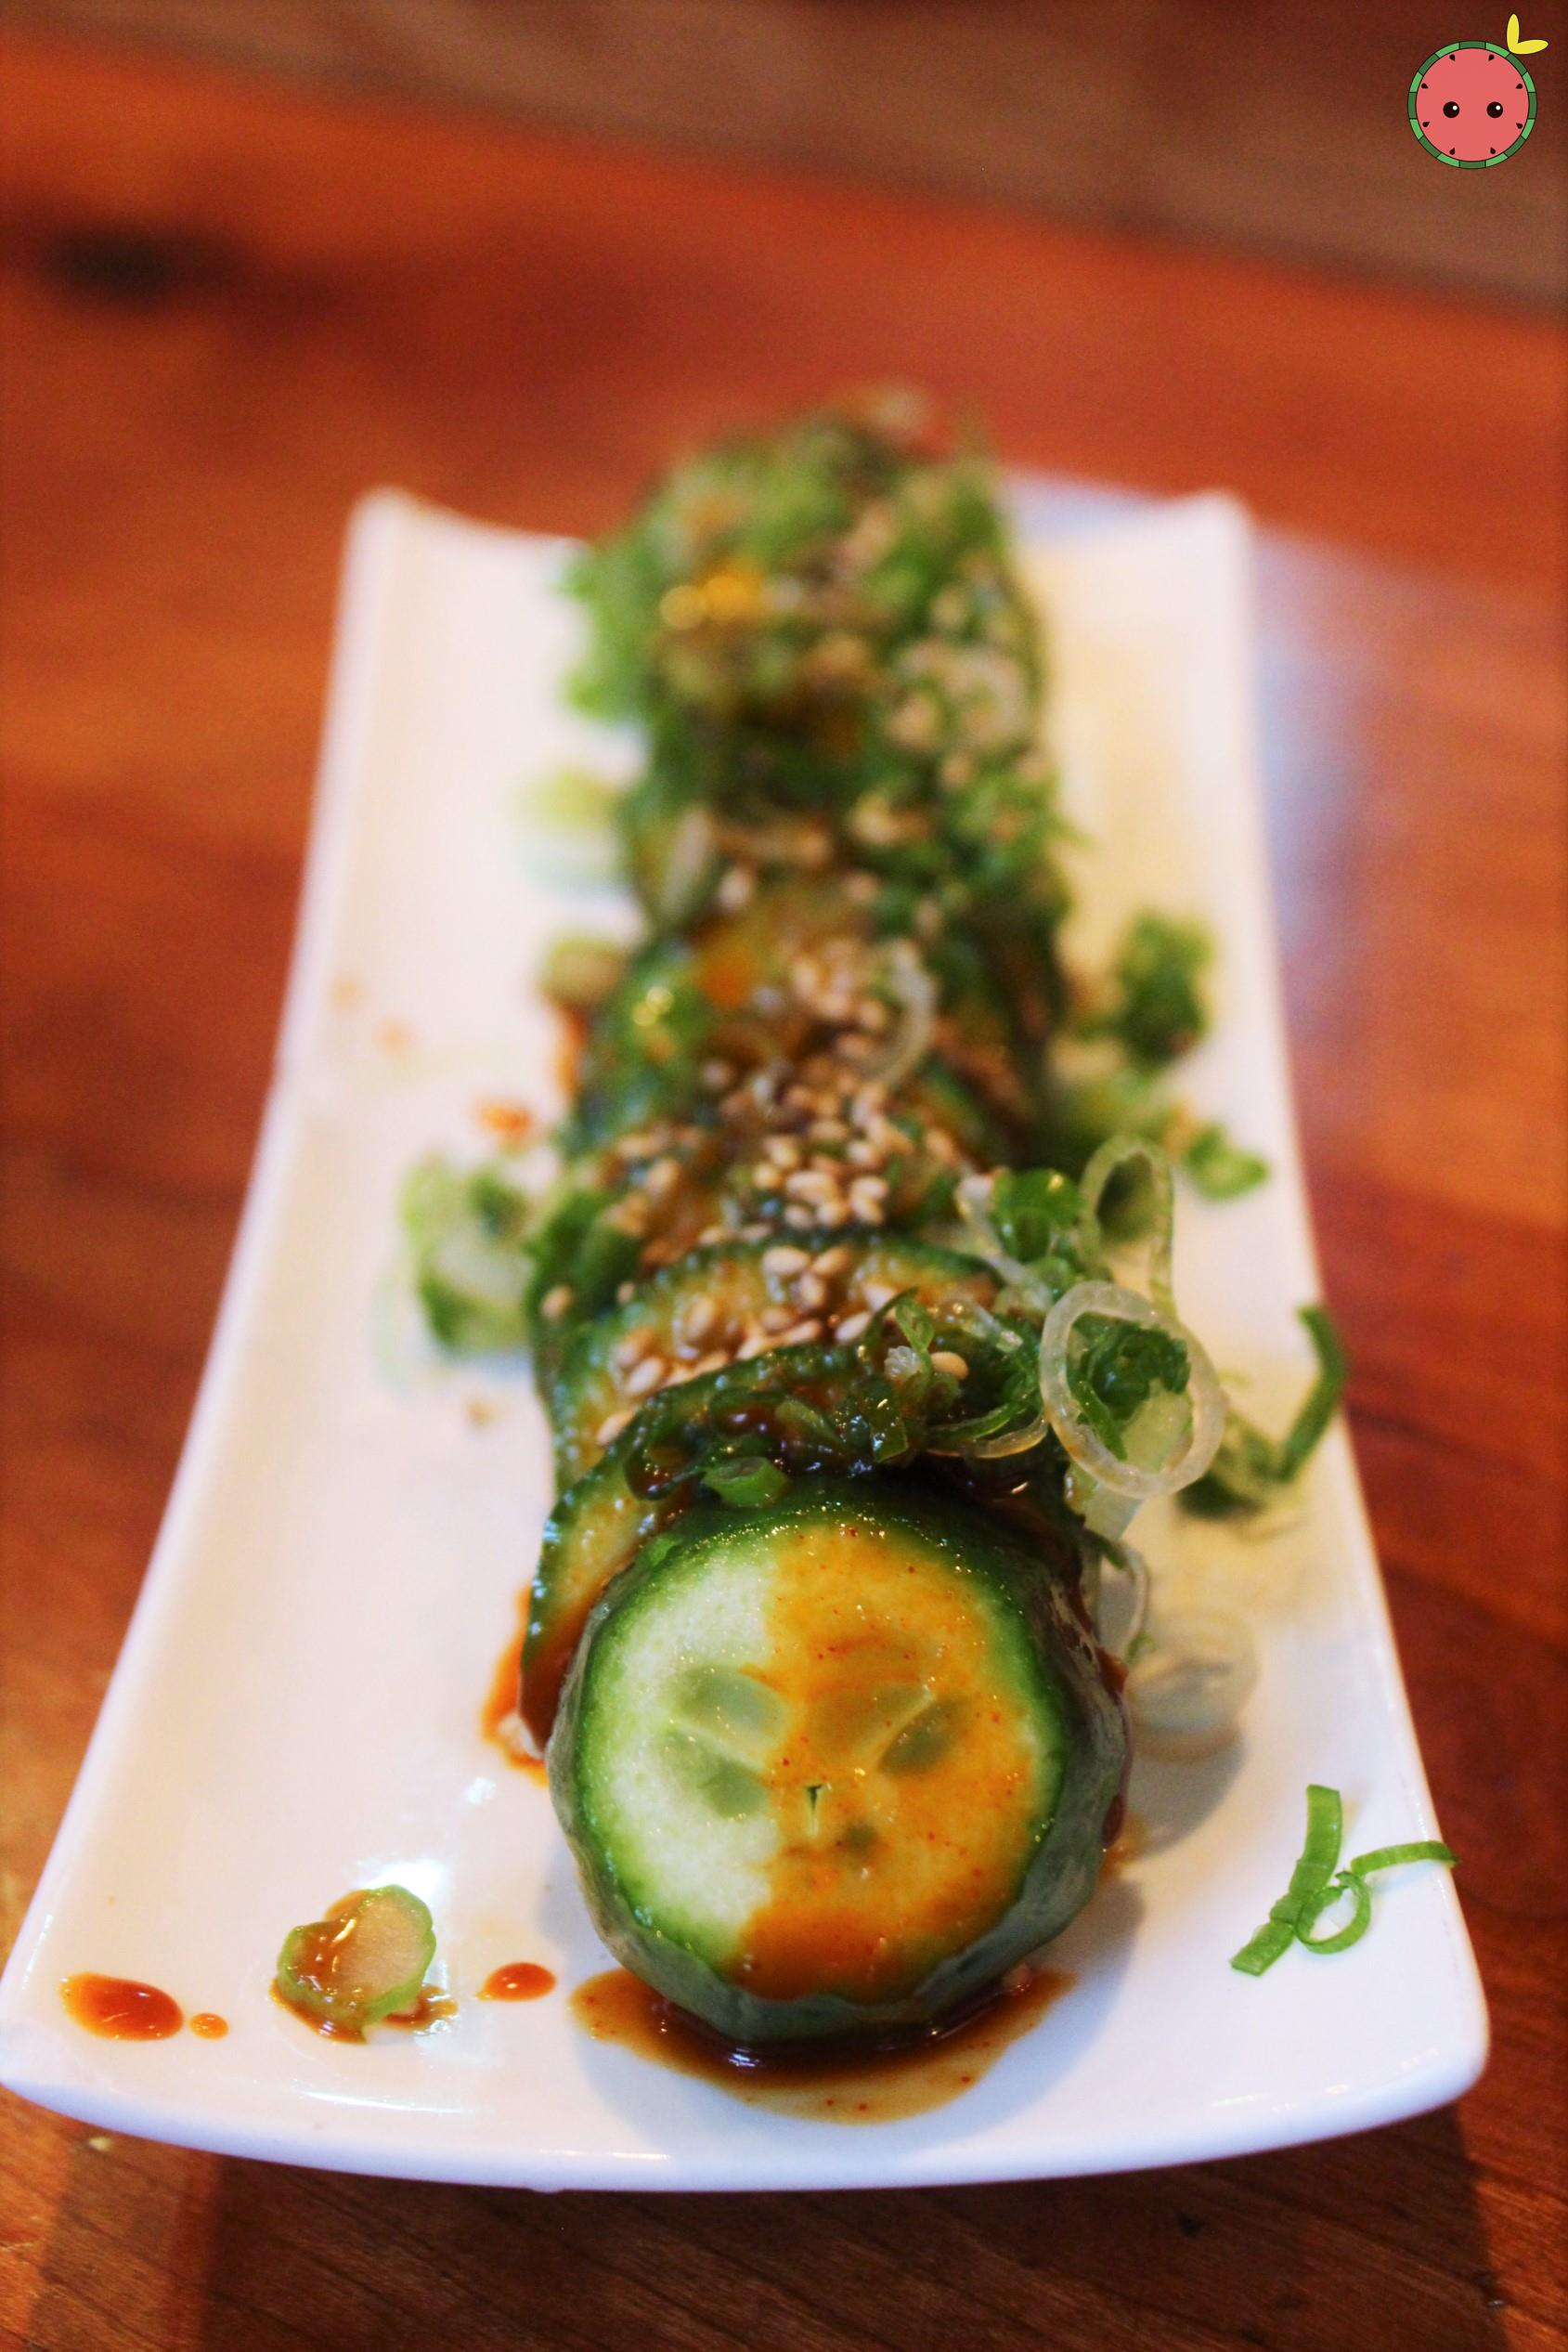 Yami Q - Fresh cucumber with special spicy sauce, scallion, and sesame